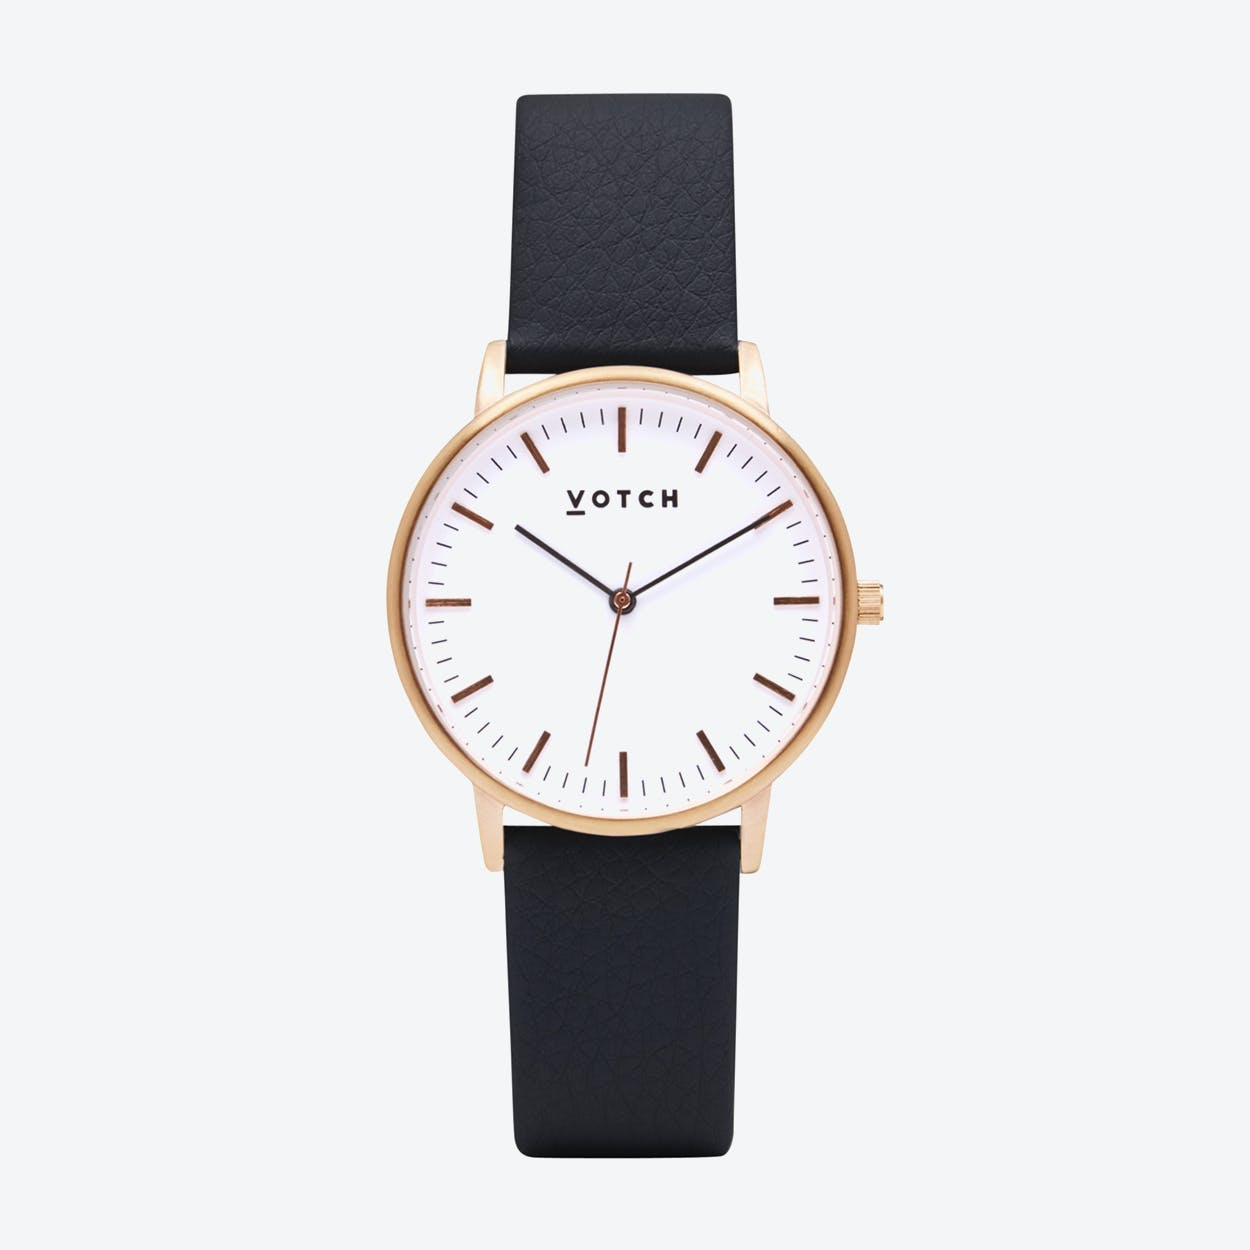 Intense Classic Watch in Rose Gold with White Face and Black Vegan Leather Strap, 36mm